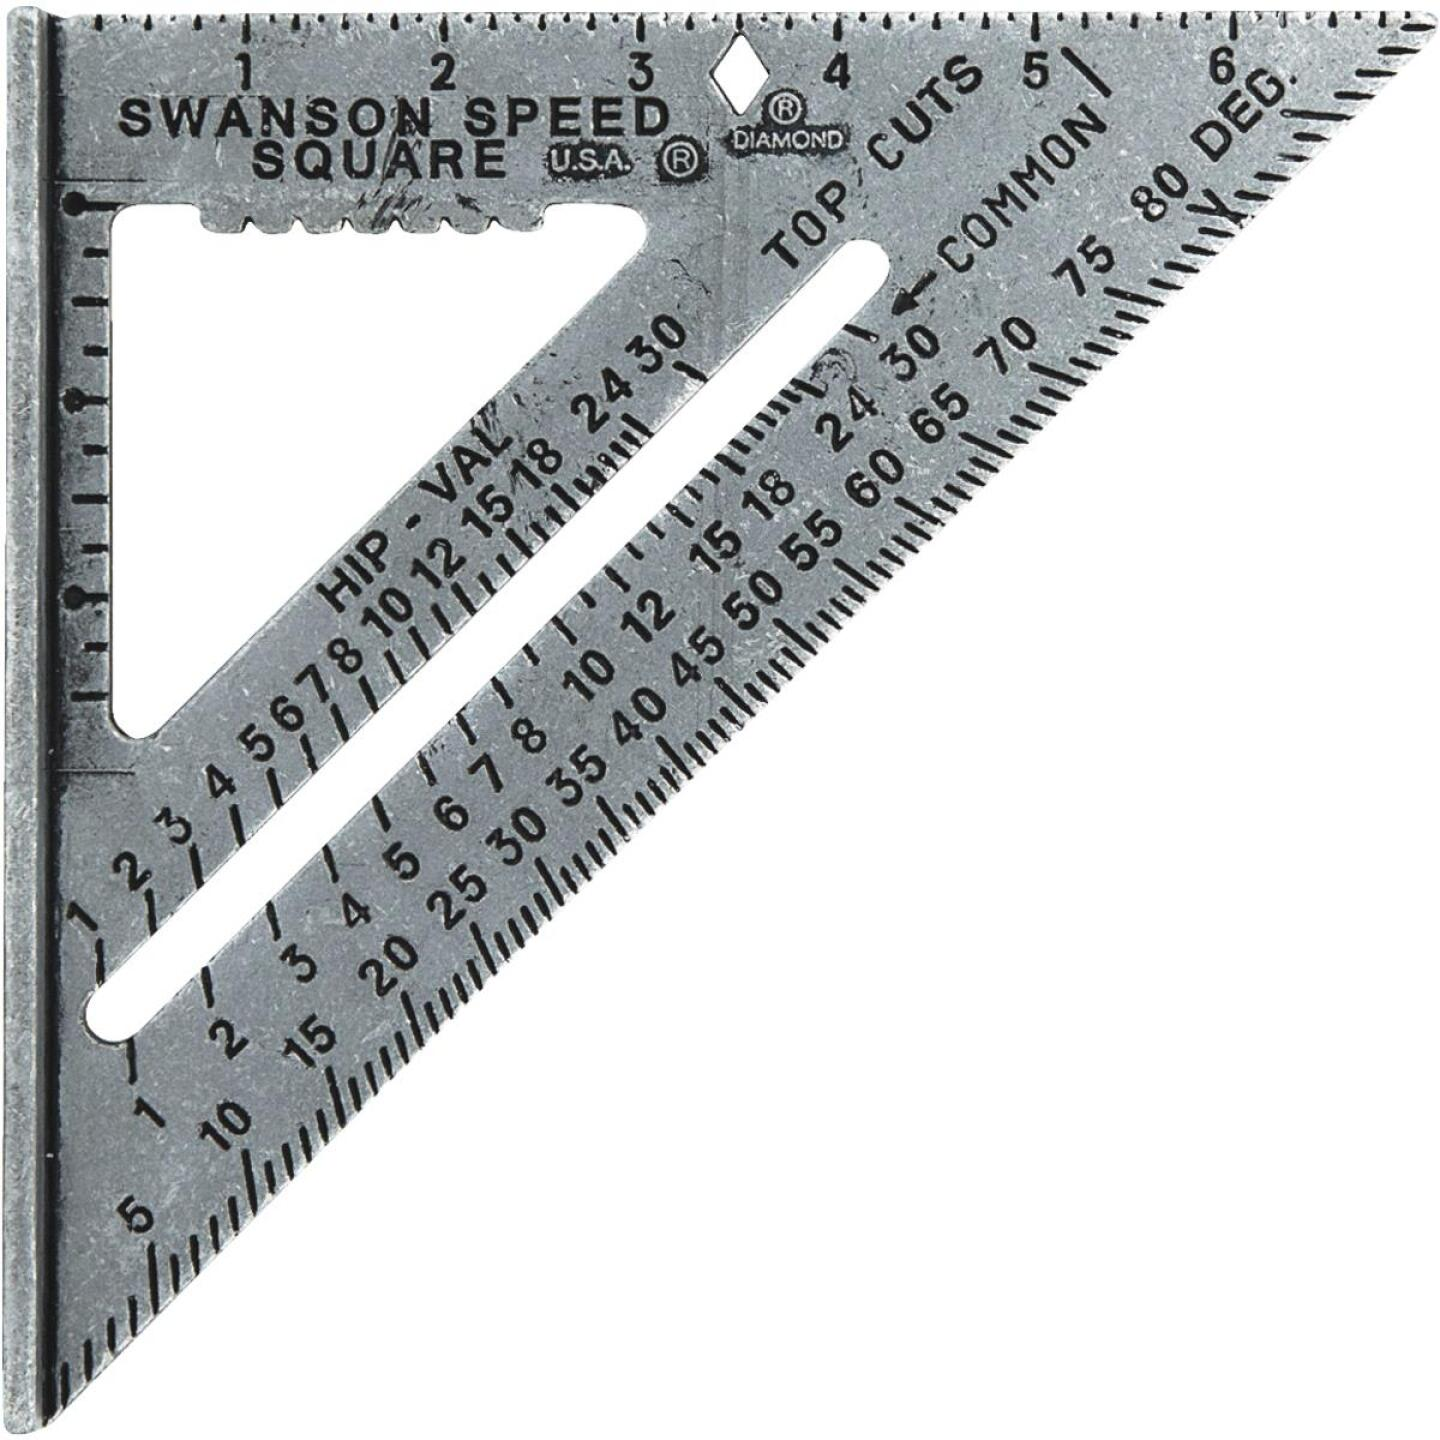 Swanson Speed 7-1/2 In. Aluminum Rafter Square Image 1